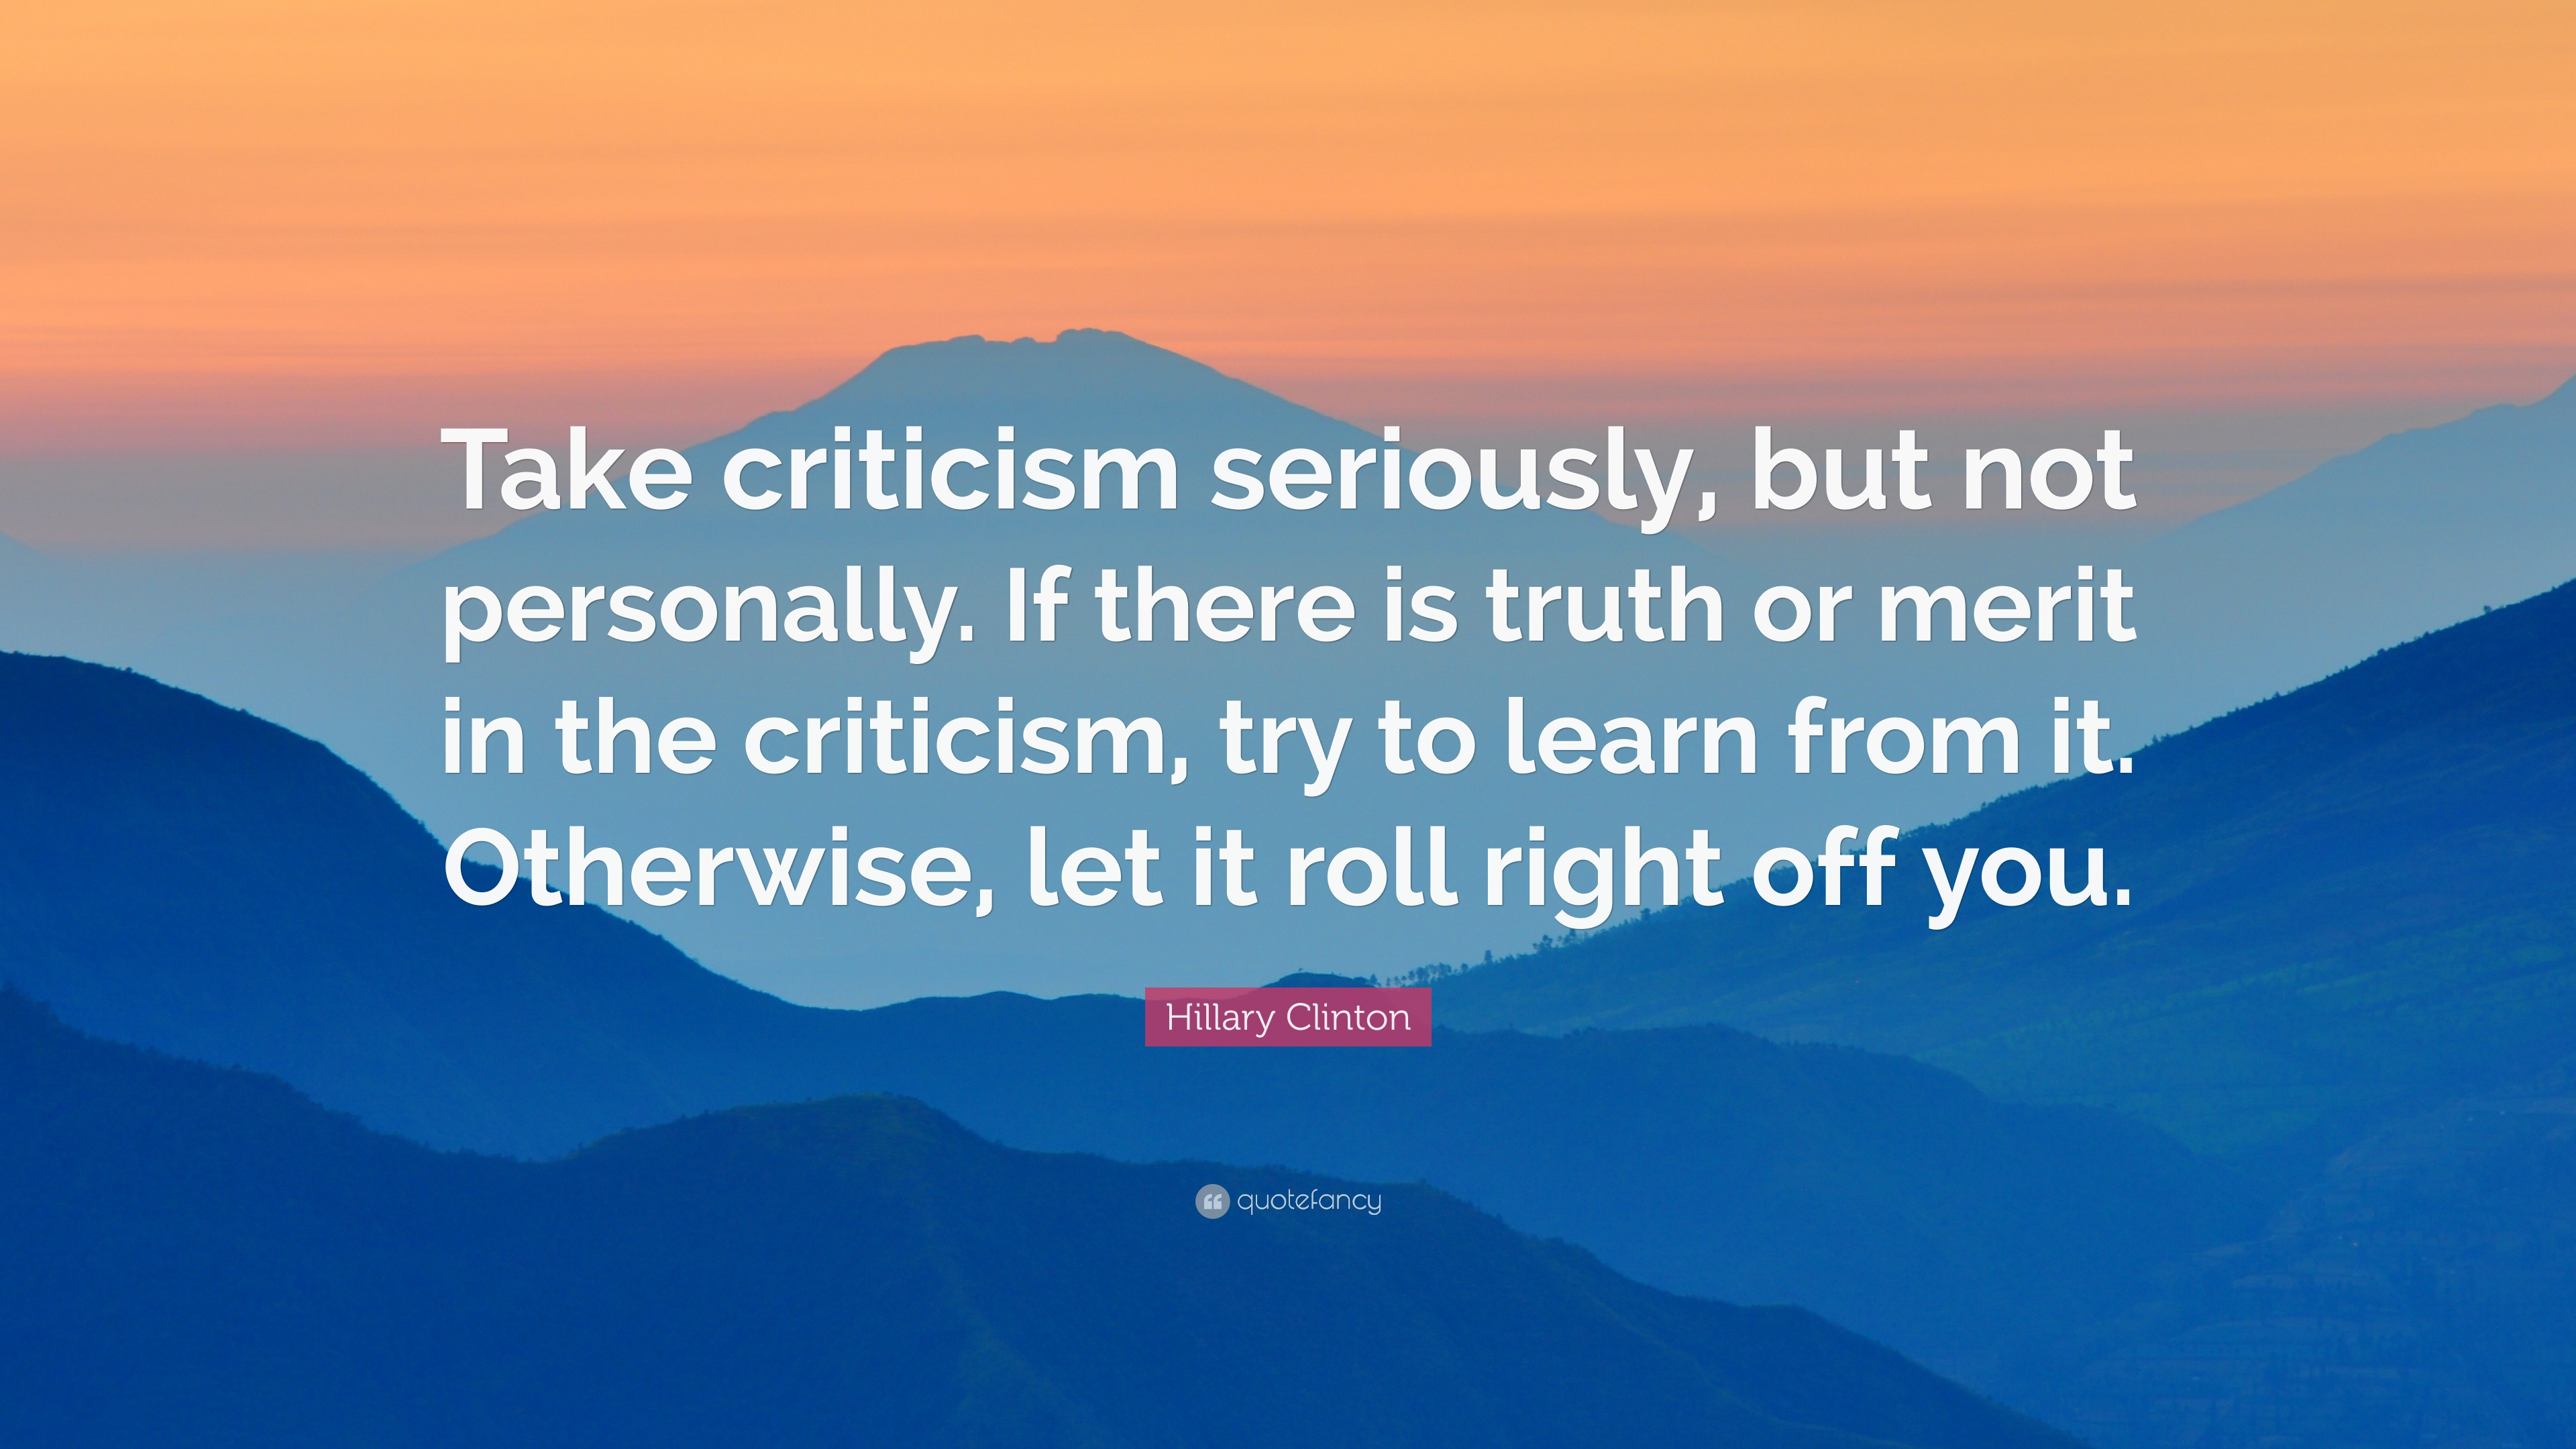 How to Handle Receiving Constructive Criticism - The Muse